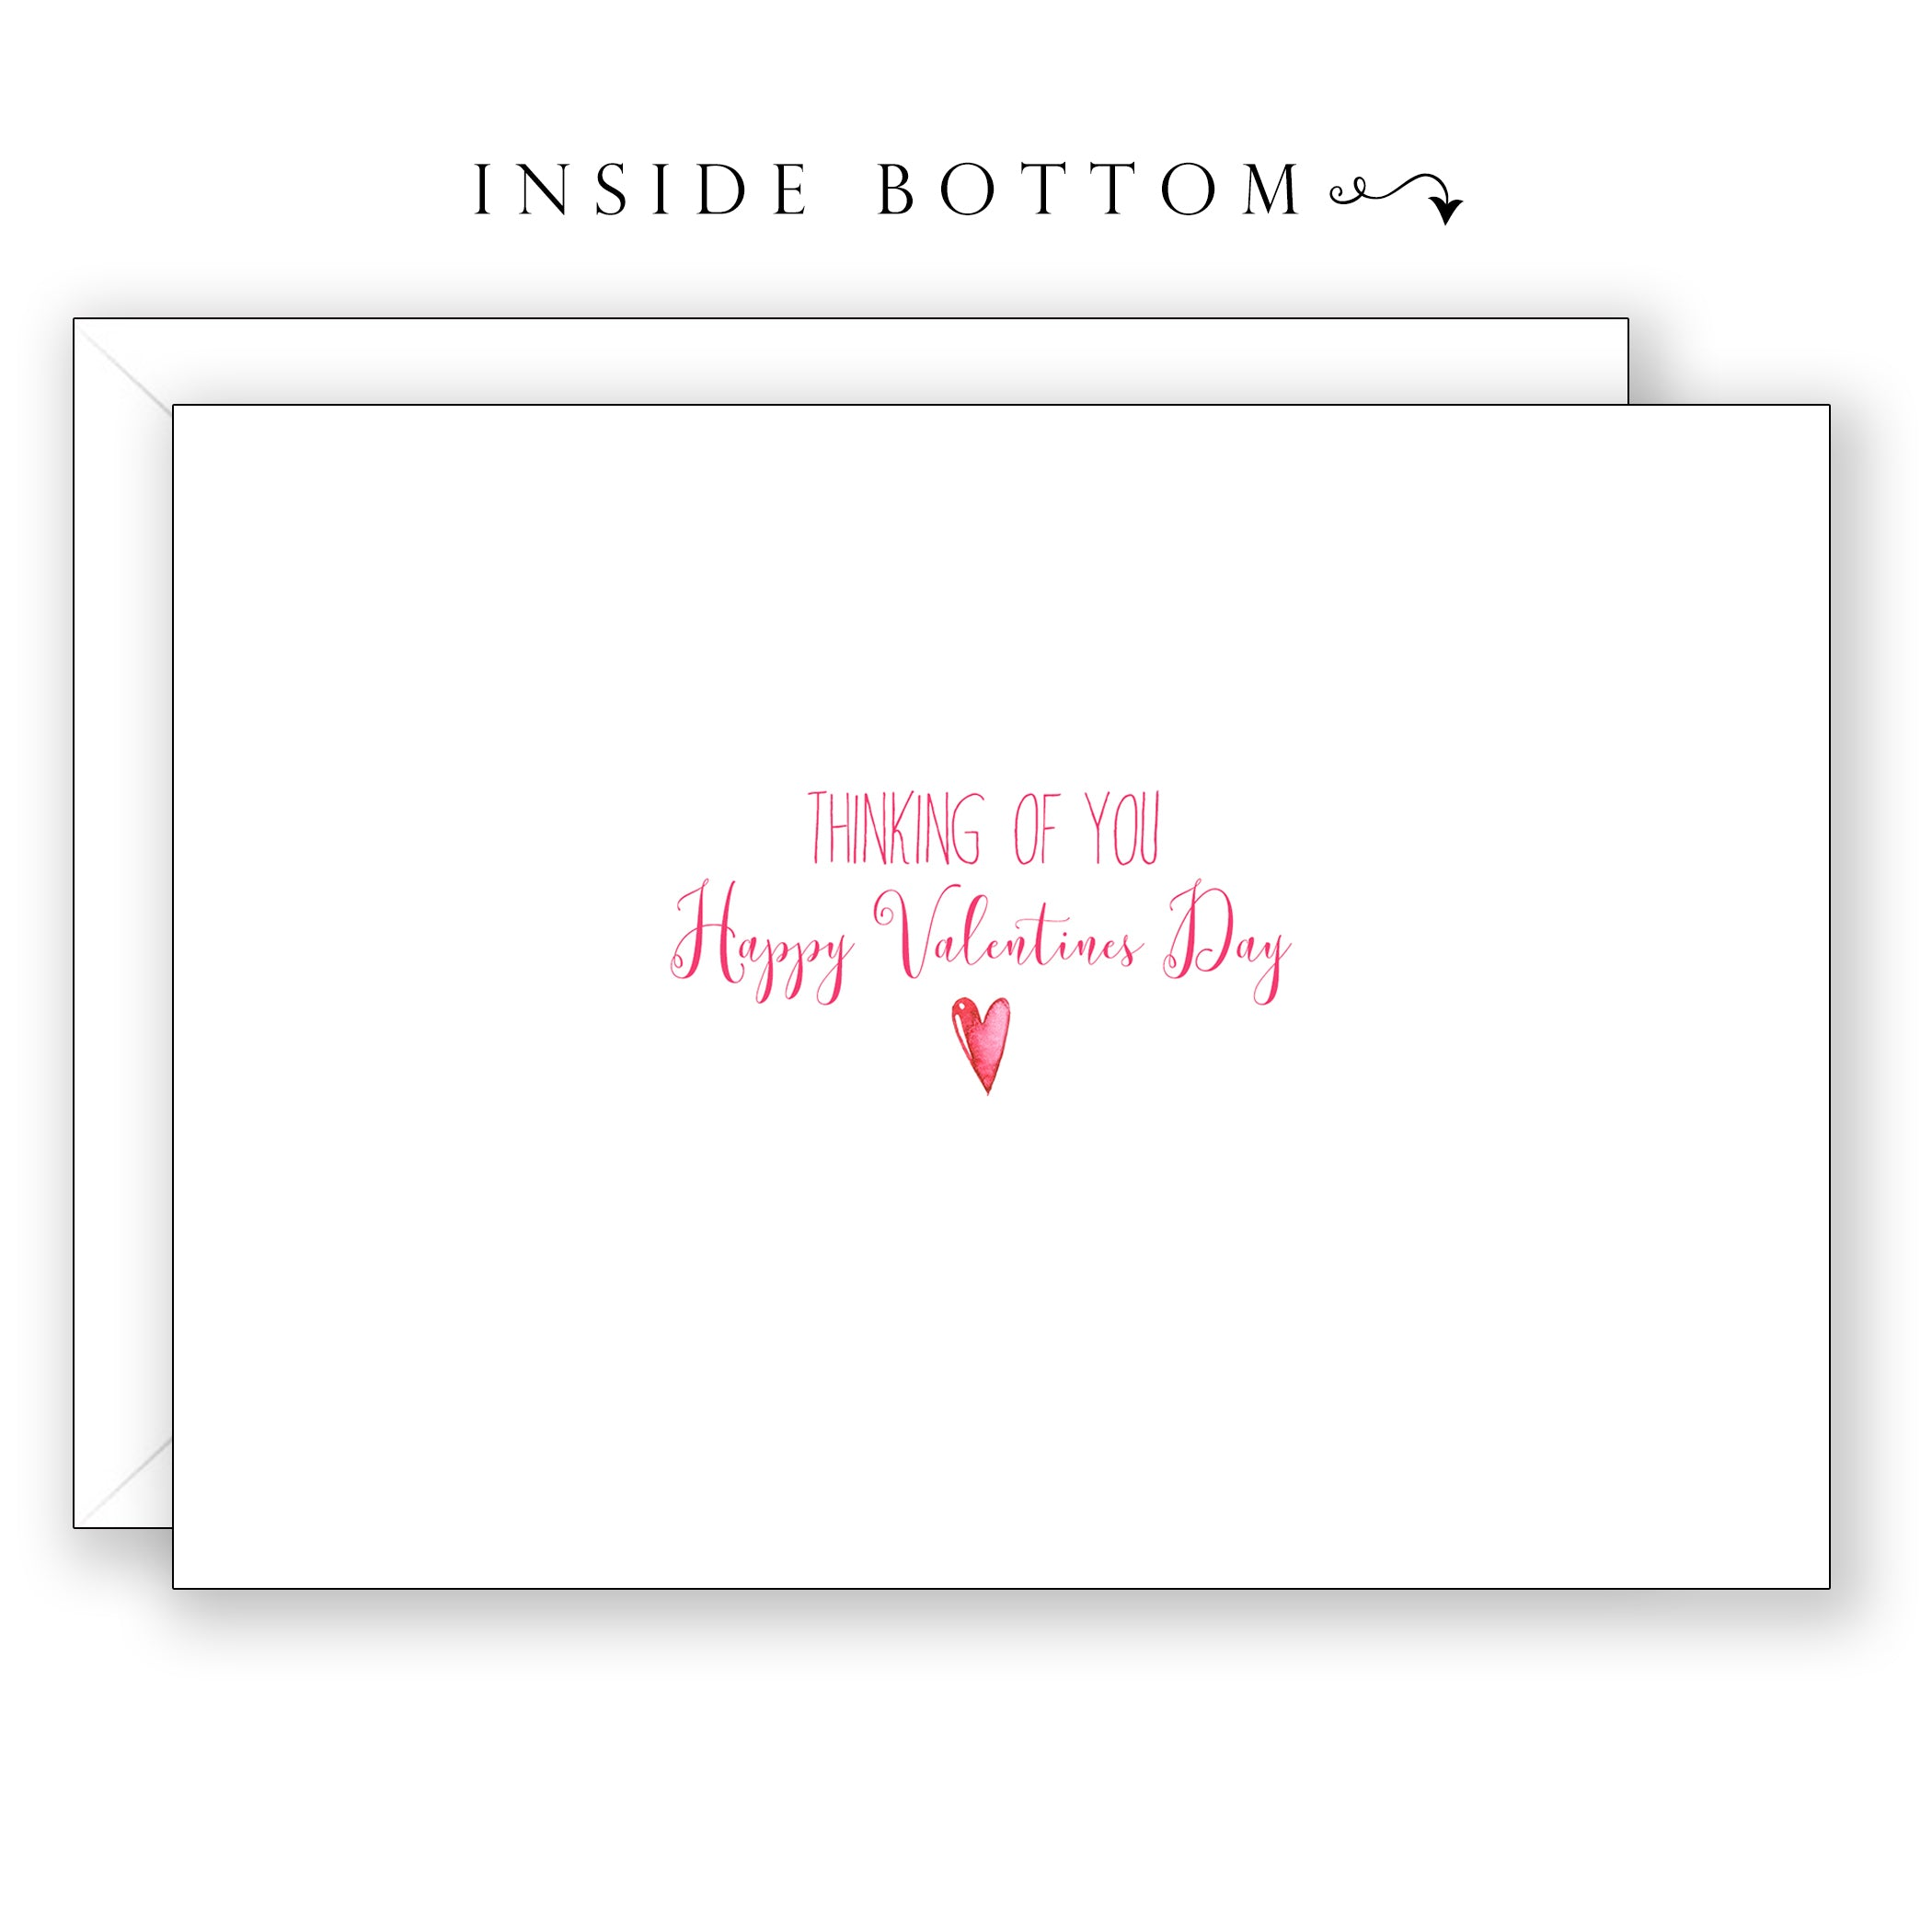 Raindrops on Roses - Valentines Day Card